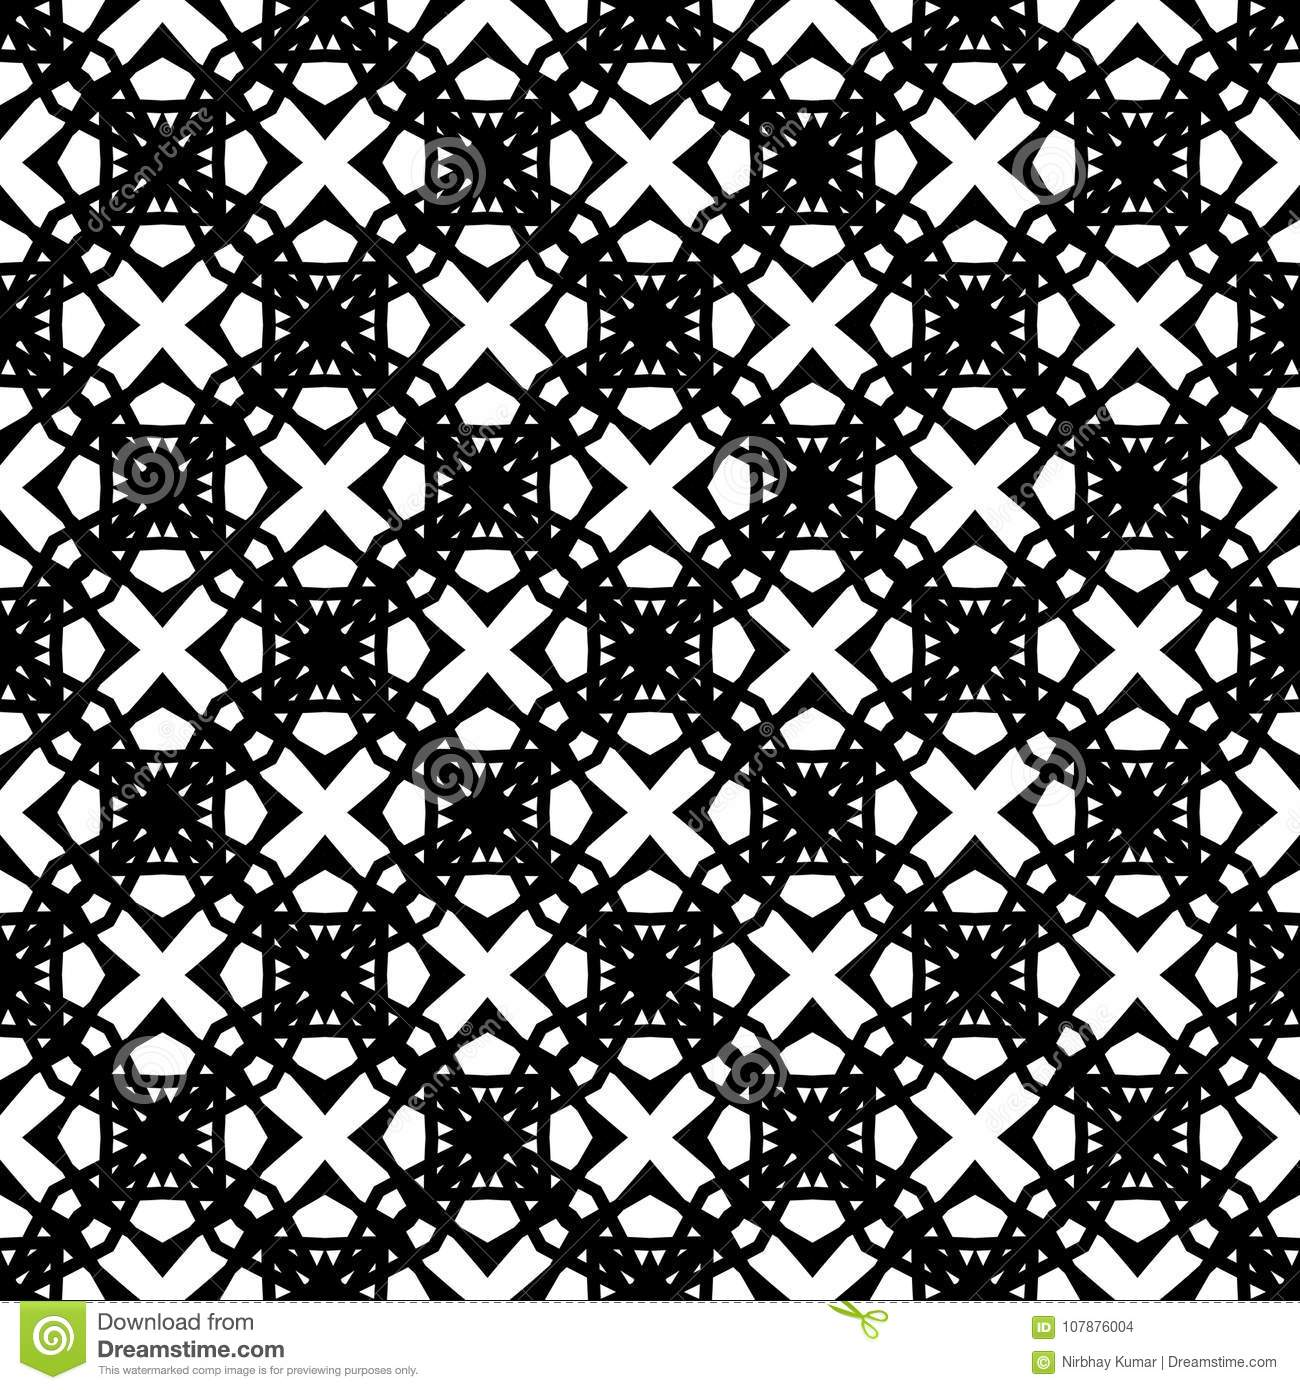 Great Wallpaper Home Screen Black And White - pattern-website-background-wallpaper-screen-sever-book-cover-printing-laser-cutting-designs-vector-black-white-107876004  Collection_182652.jpg